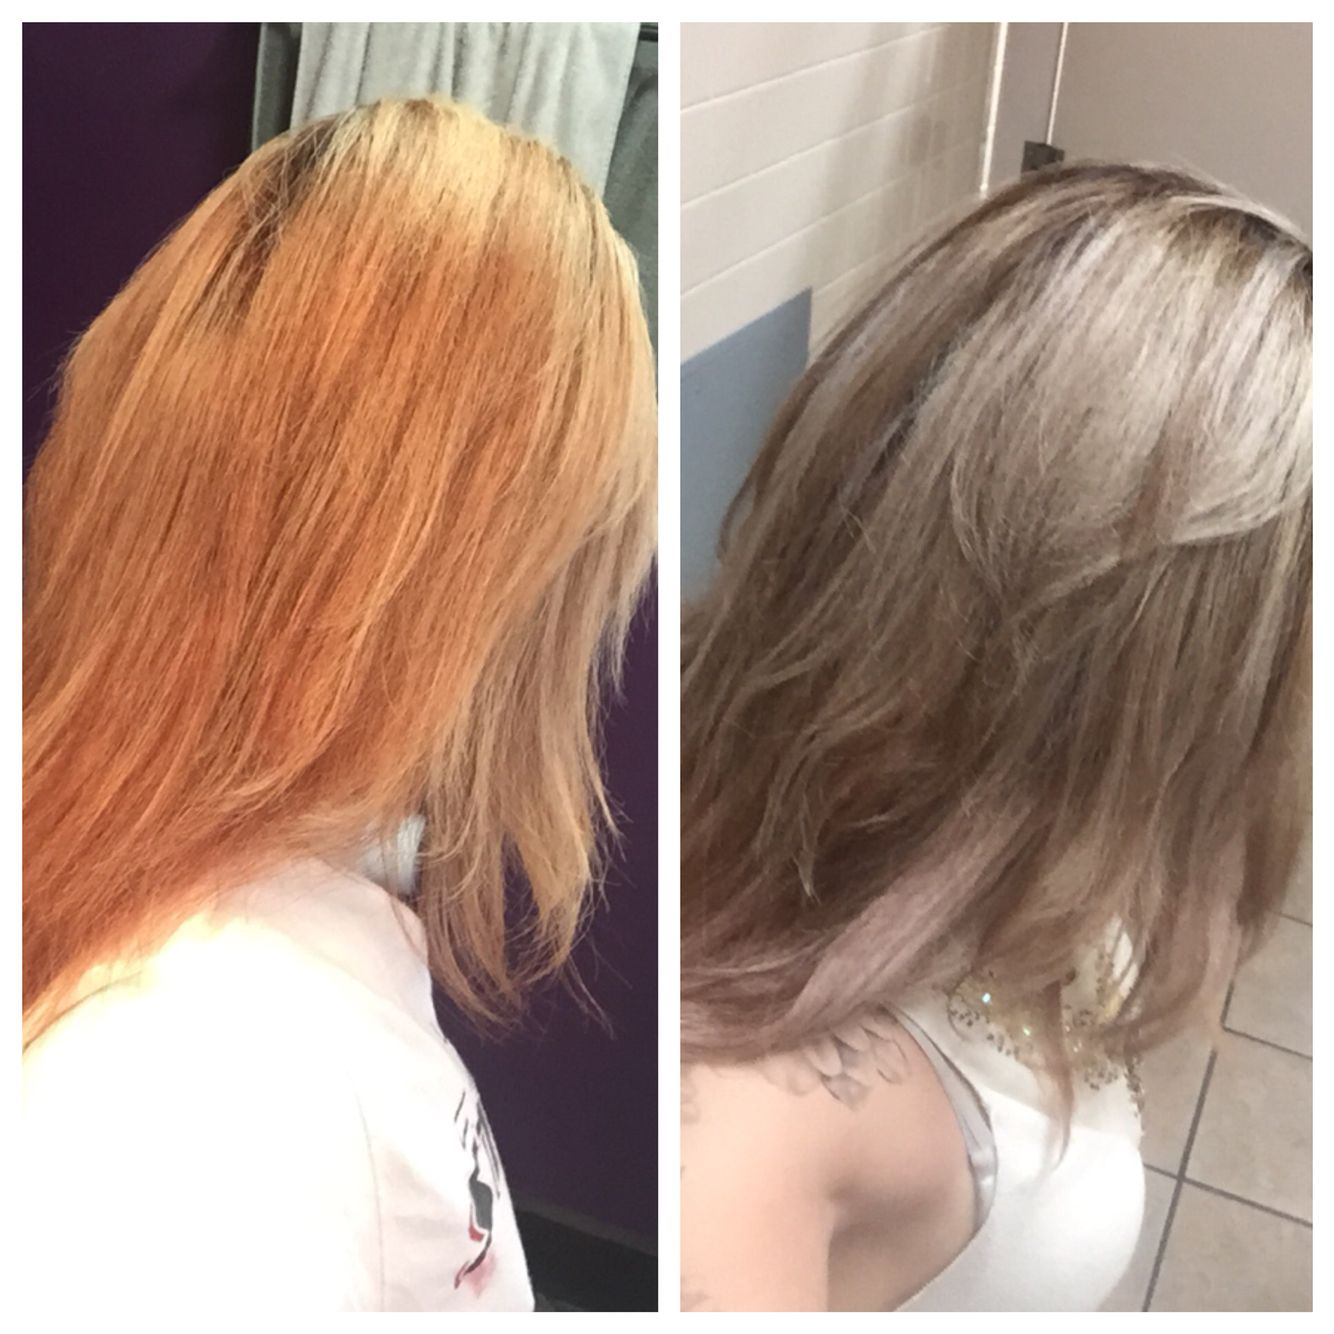 Wella T18 Toner Before And After Wella Hair Color Wella Toner Toner For Blonde Hair